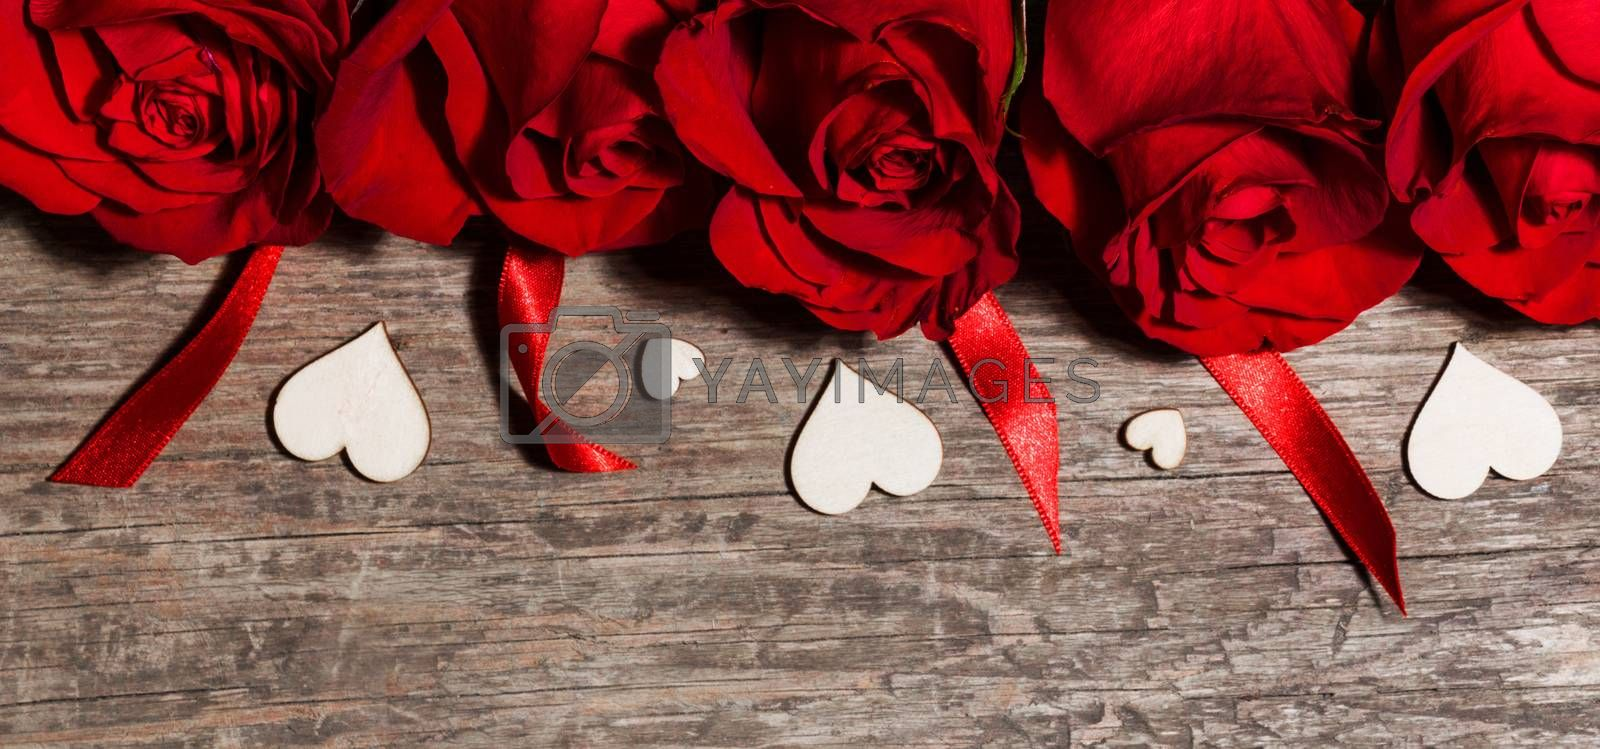 Roses ribbons and wooden hearts on wooden background, Valentines day